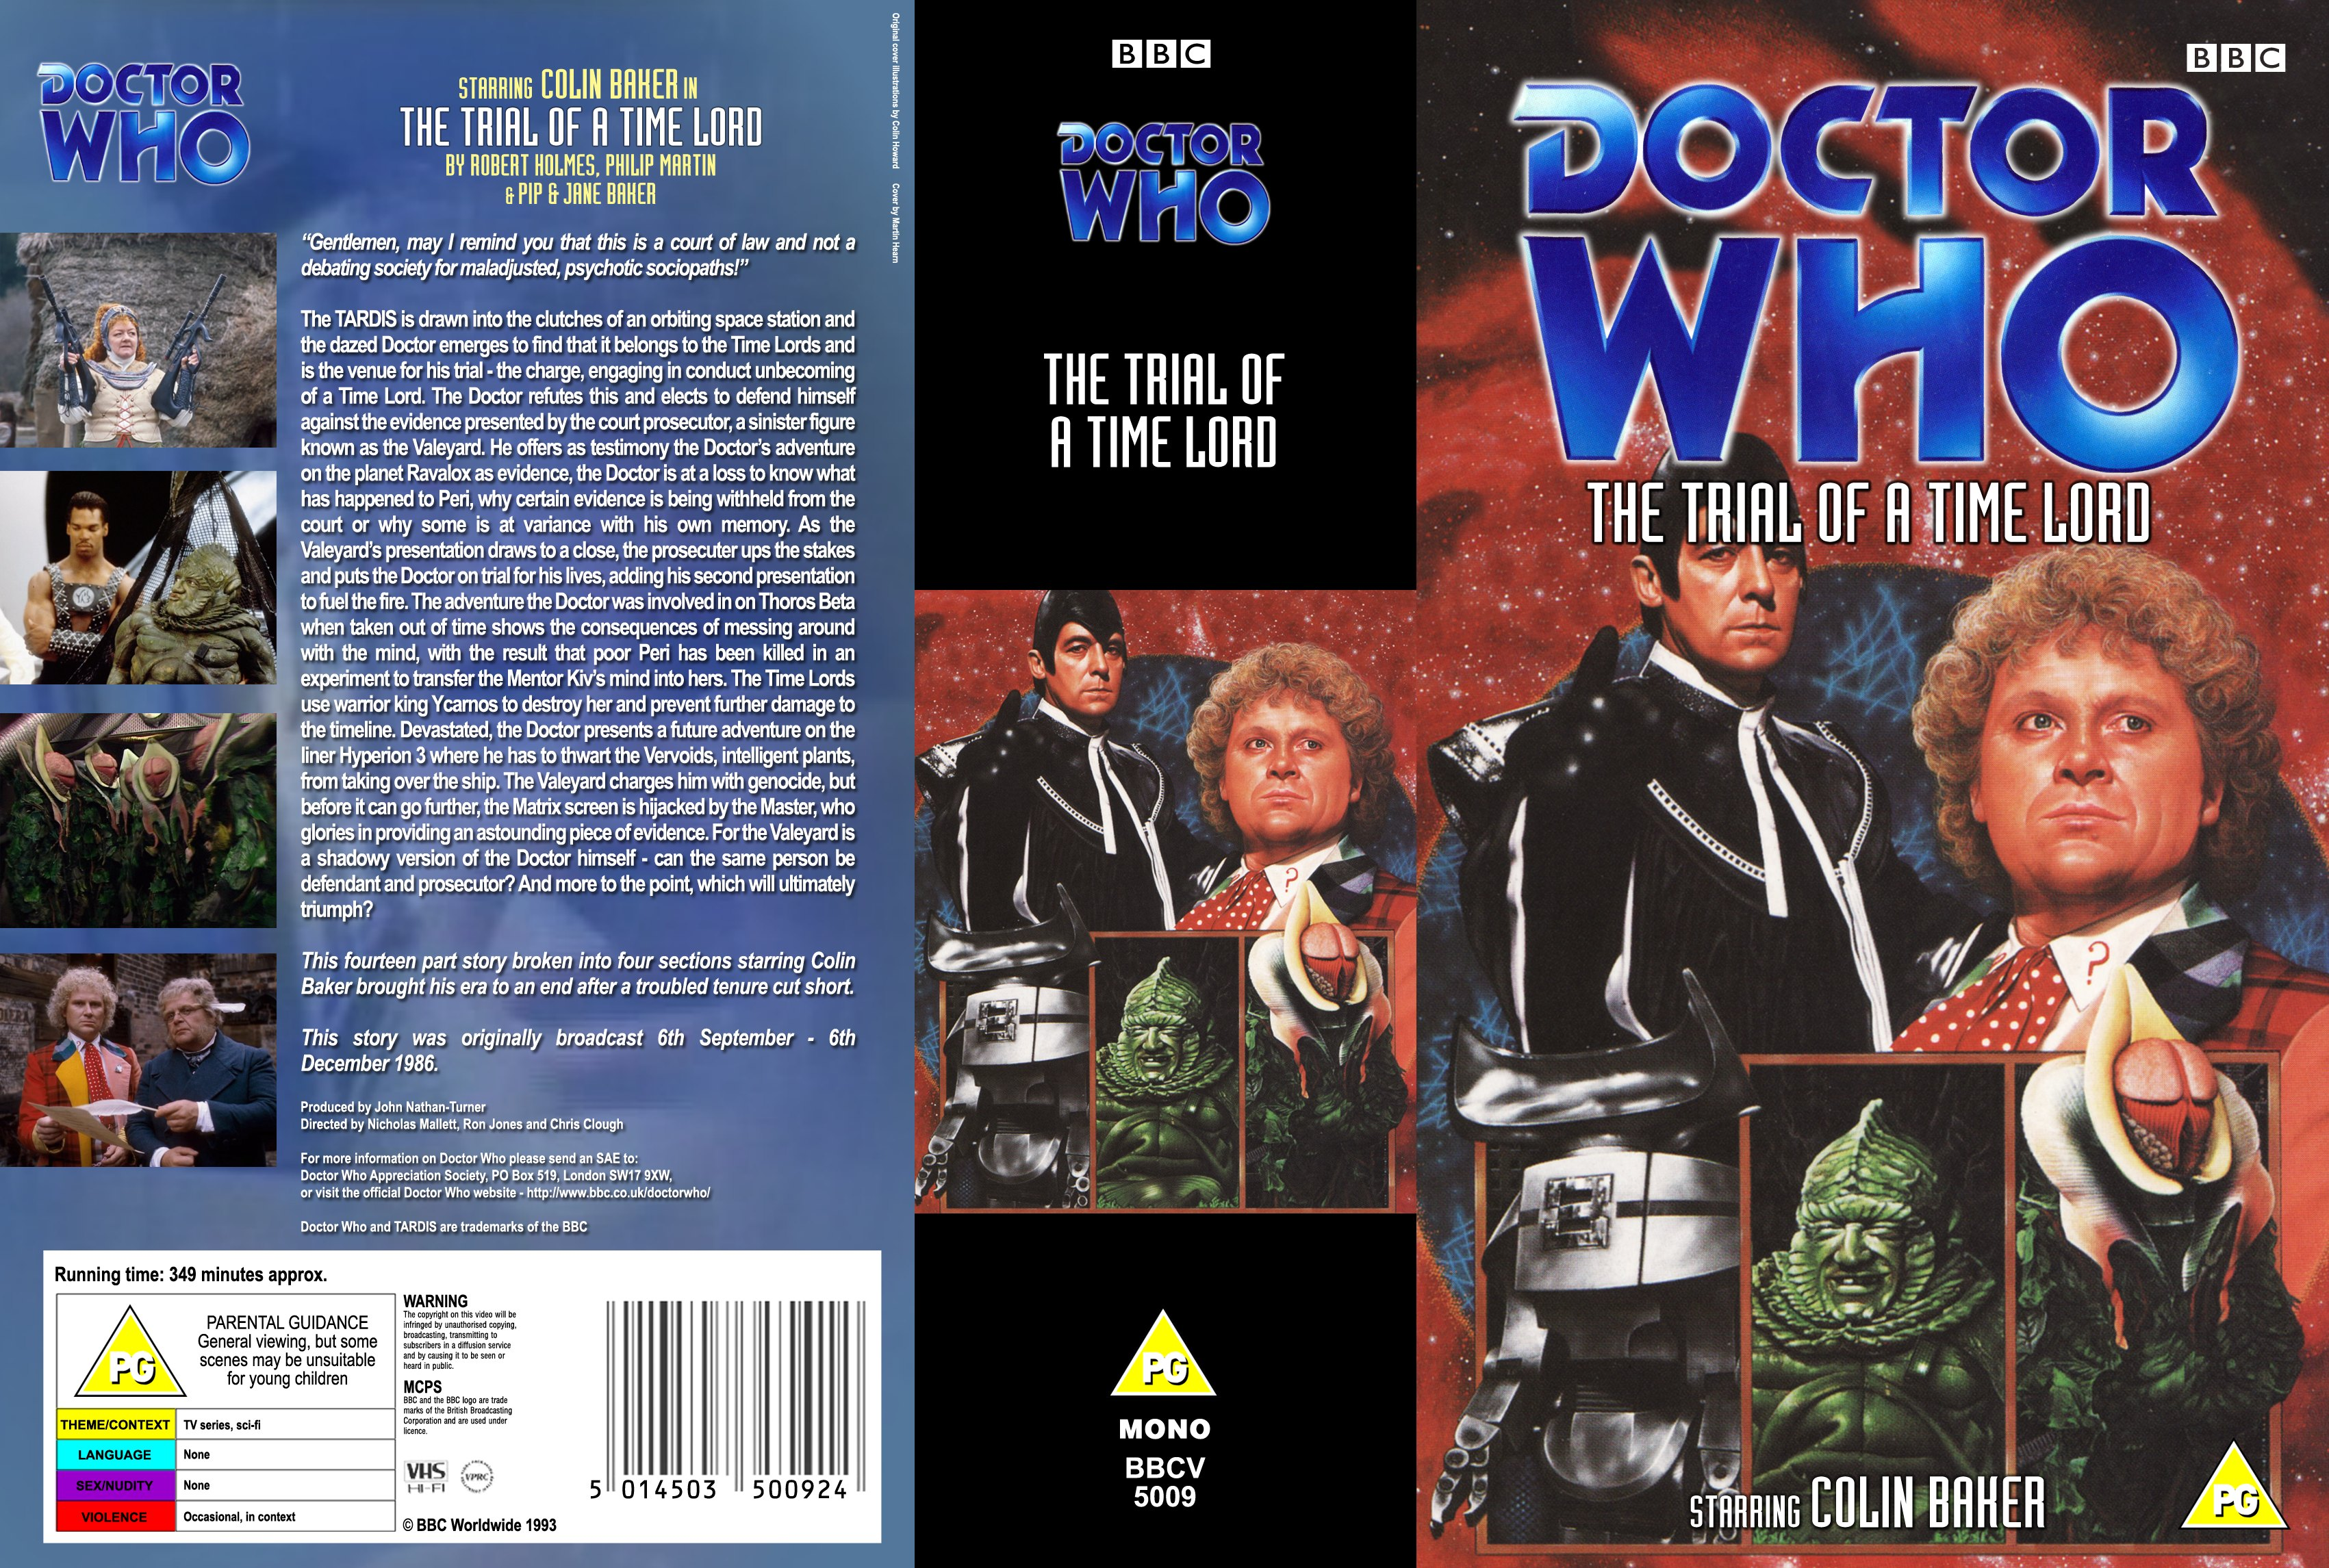 My Double Pack Cover With Black Sheep Spine For The Trial Of A Time Lord